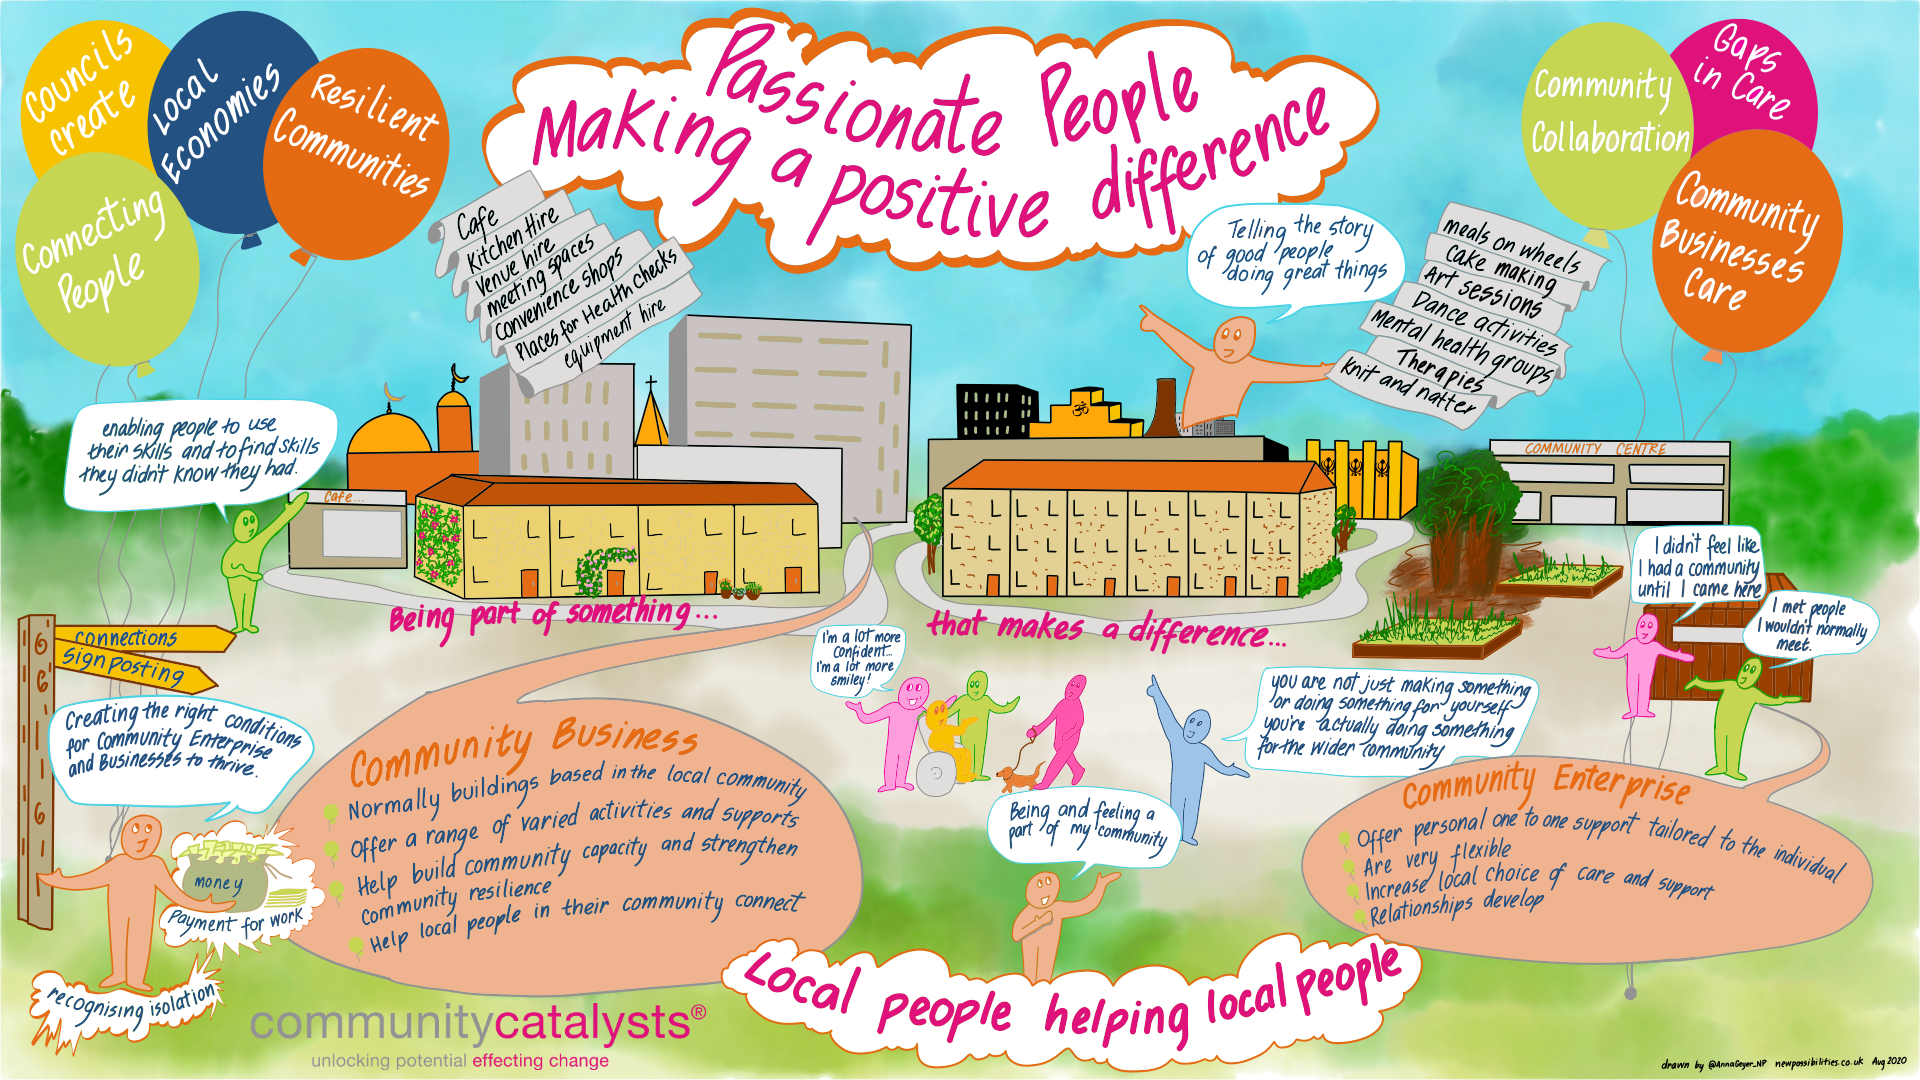 Passionate People : Making a Positive Difference